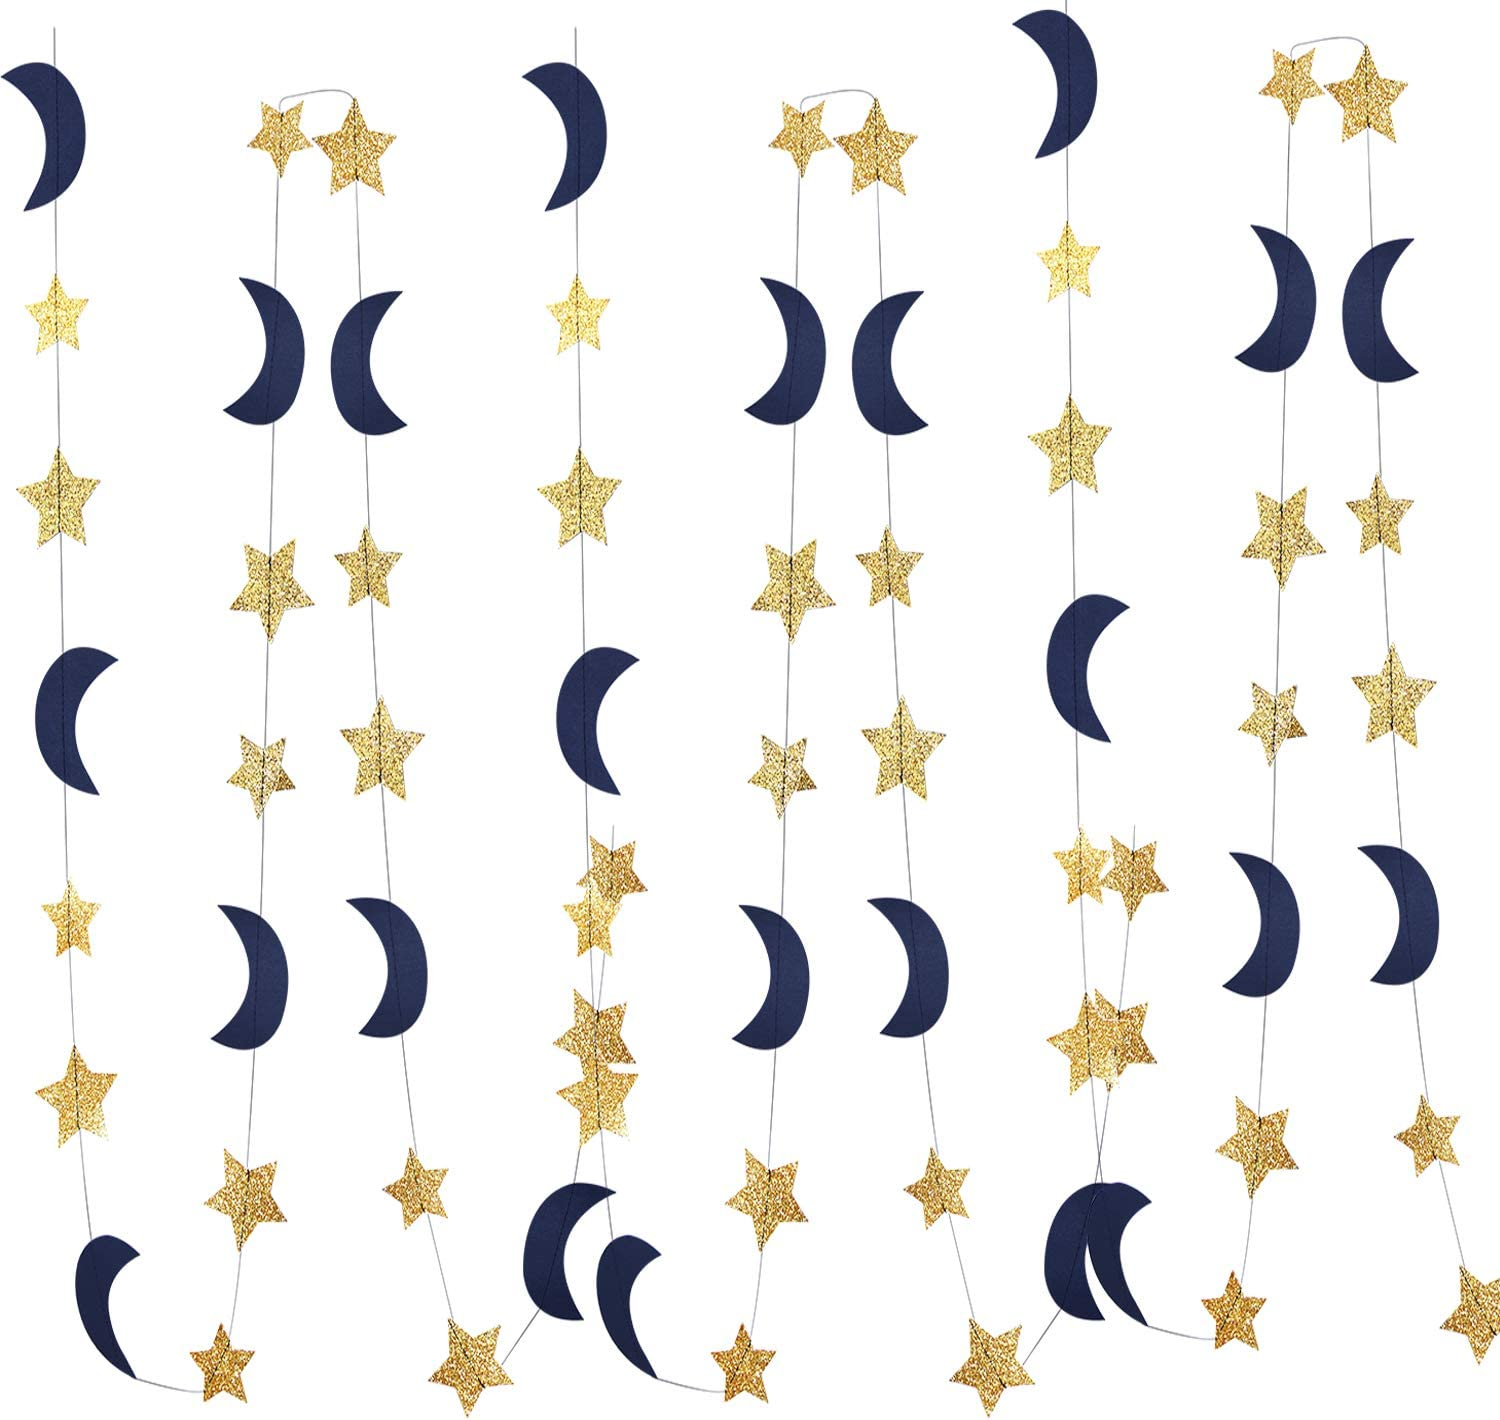 Moon and Star Garland Decorations Navy Gold Glitter Outer Space Birthday Party Decorations Hanging Decorations Honey Moon Wedding Engagement Twinkle Twinkle Baby Shower Decorations/Birthday Decorations